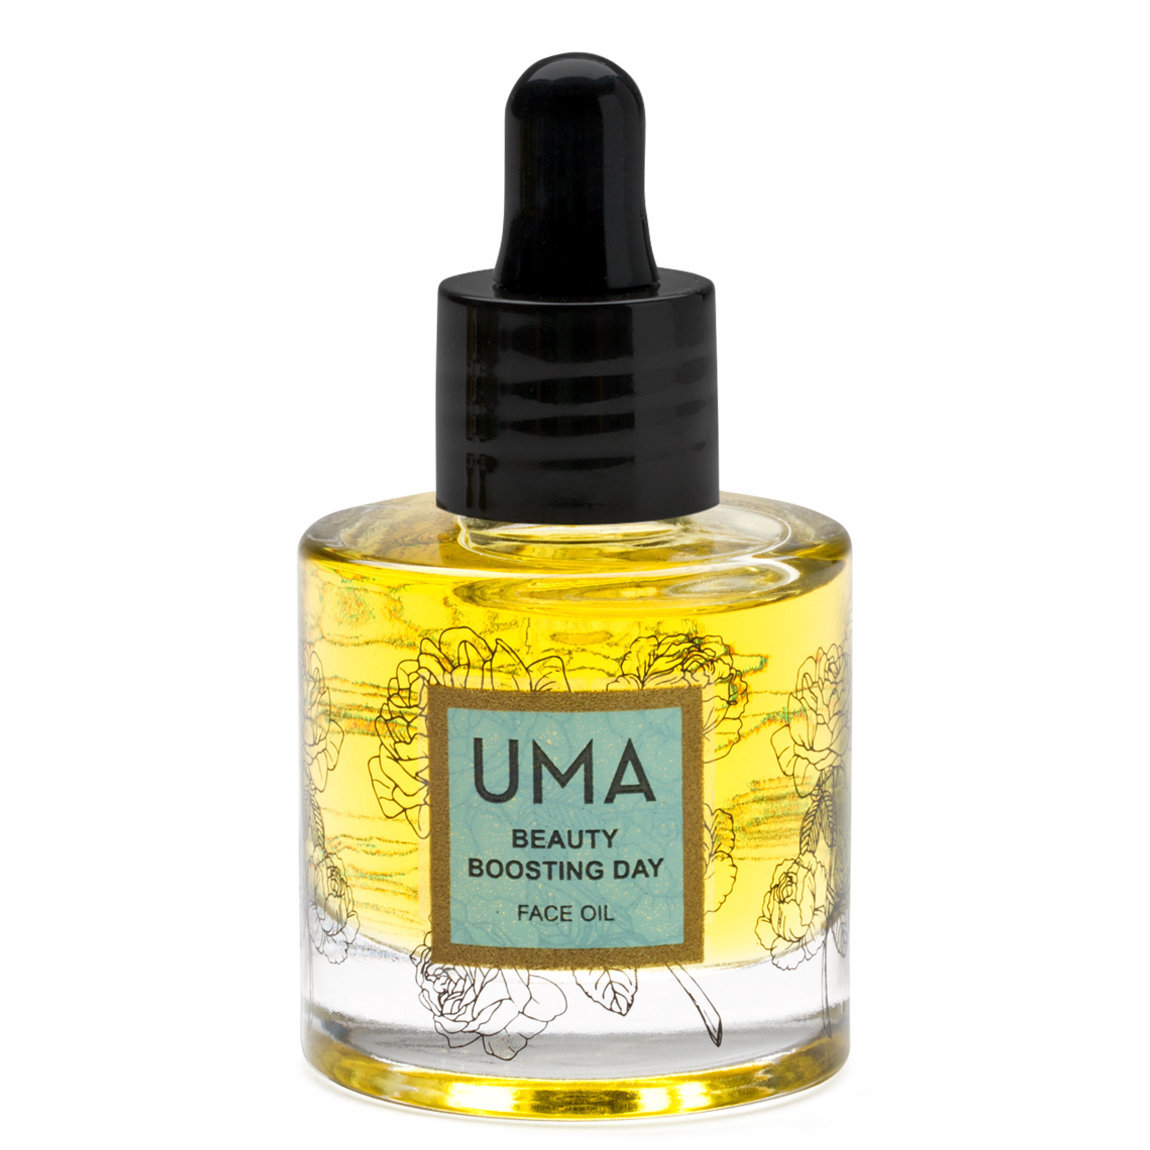 Uma Beauty Boosting Day Face Oil product smear.